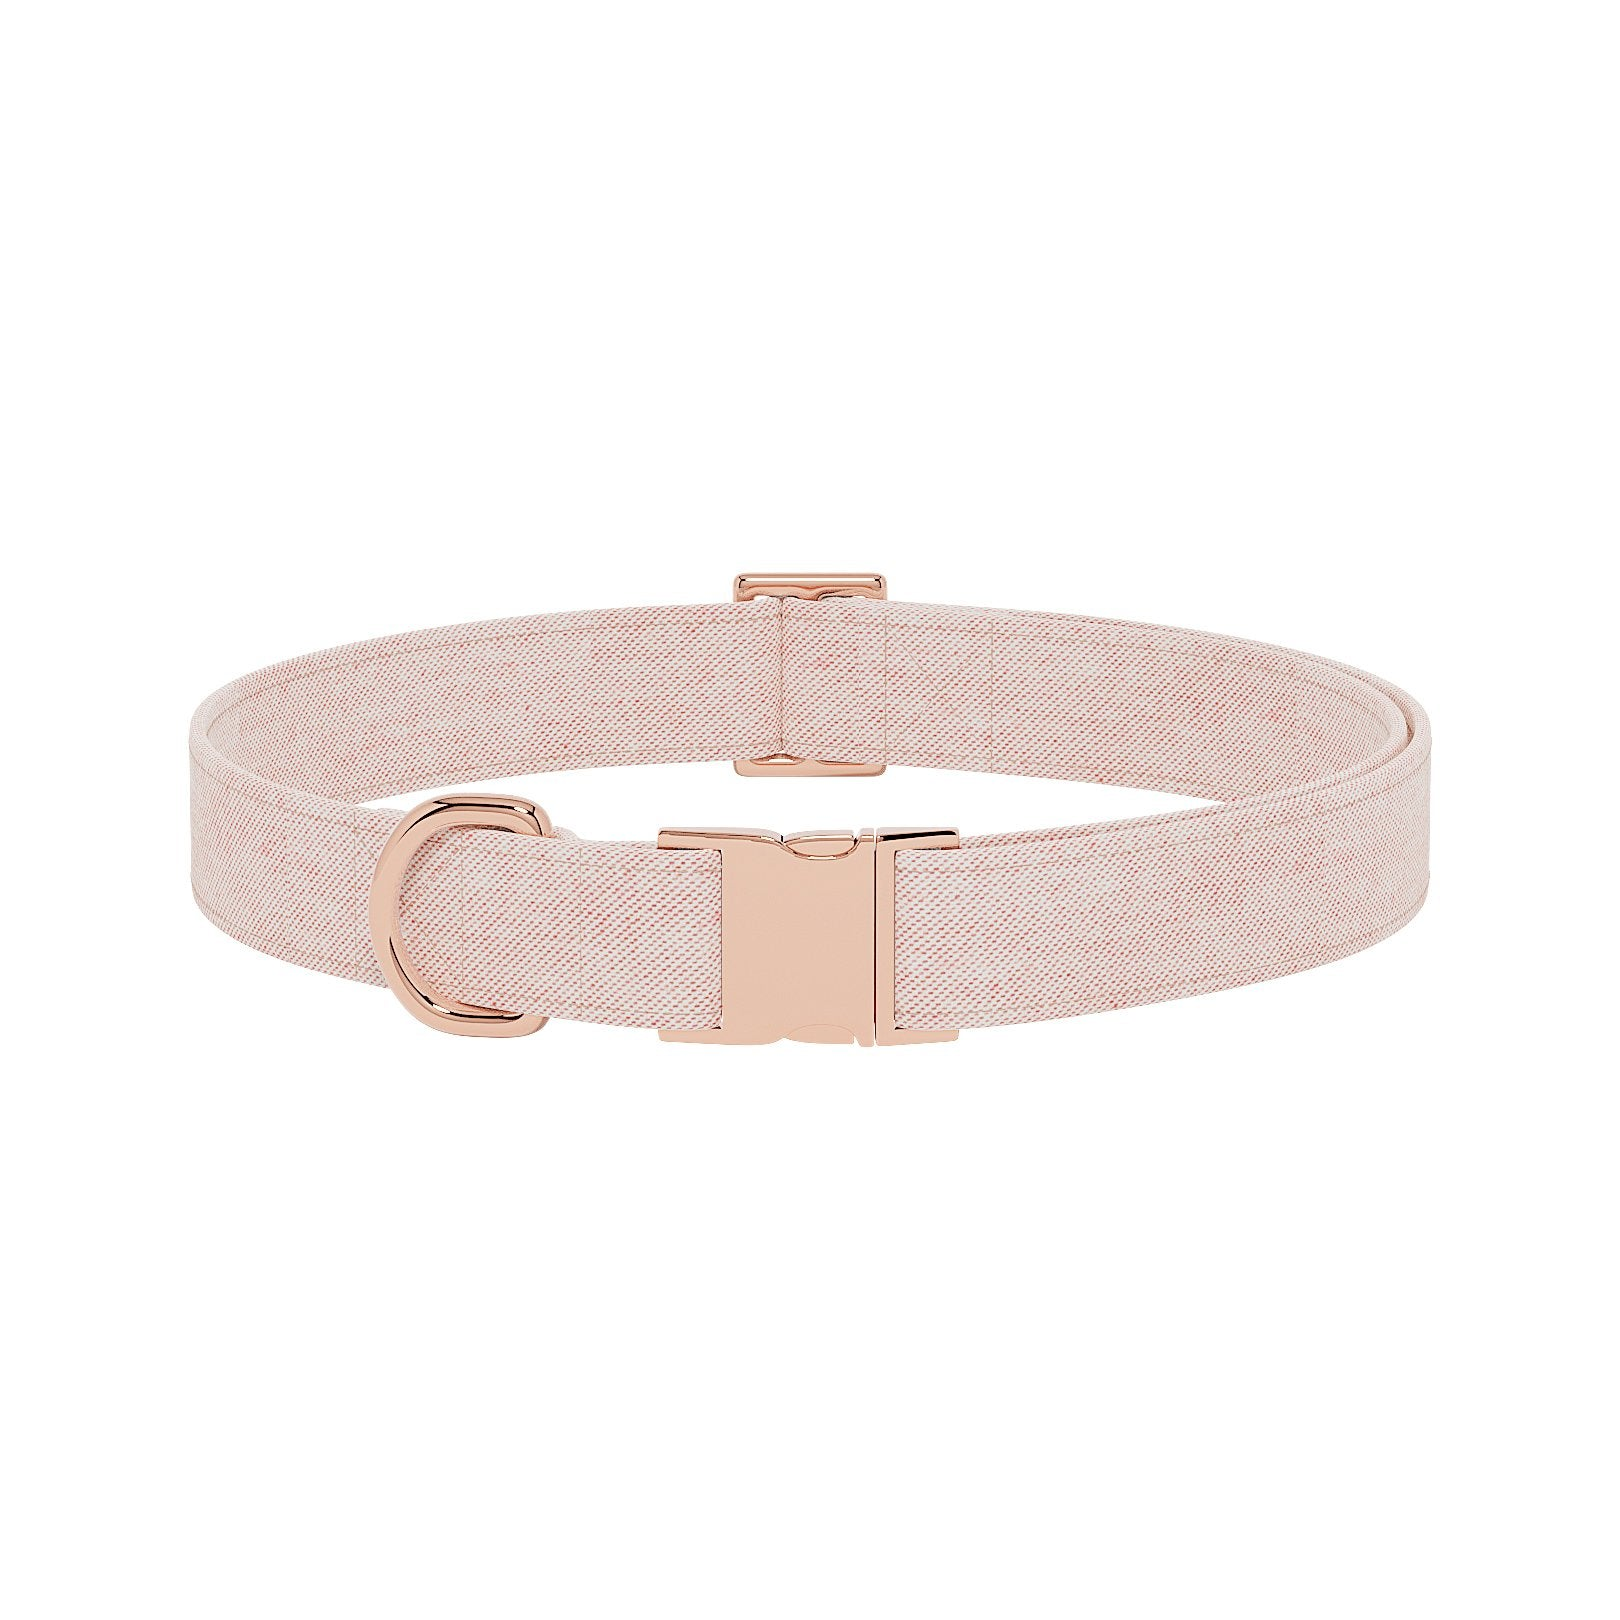 Flannel Peach Dog Collar